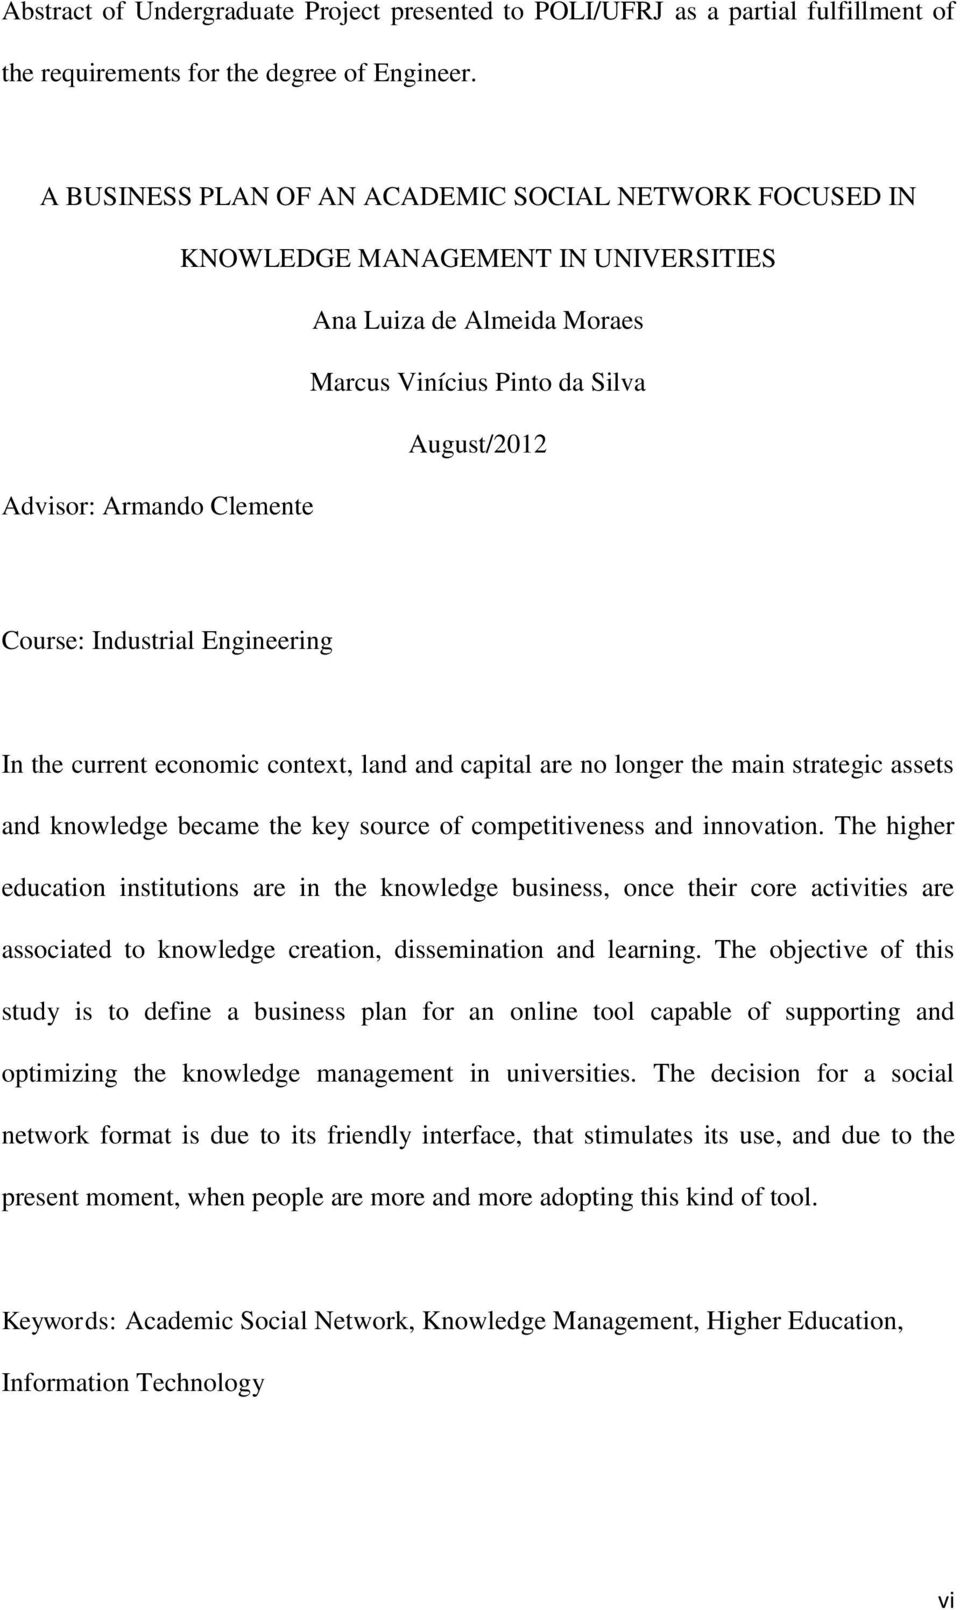 Industrial Engineering In the current economic context, land and capital are no longer the main strategic assets and knowledge became the key source of competitiveness and innovation.